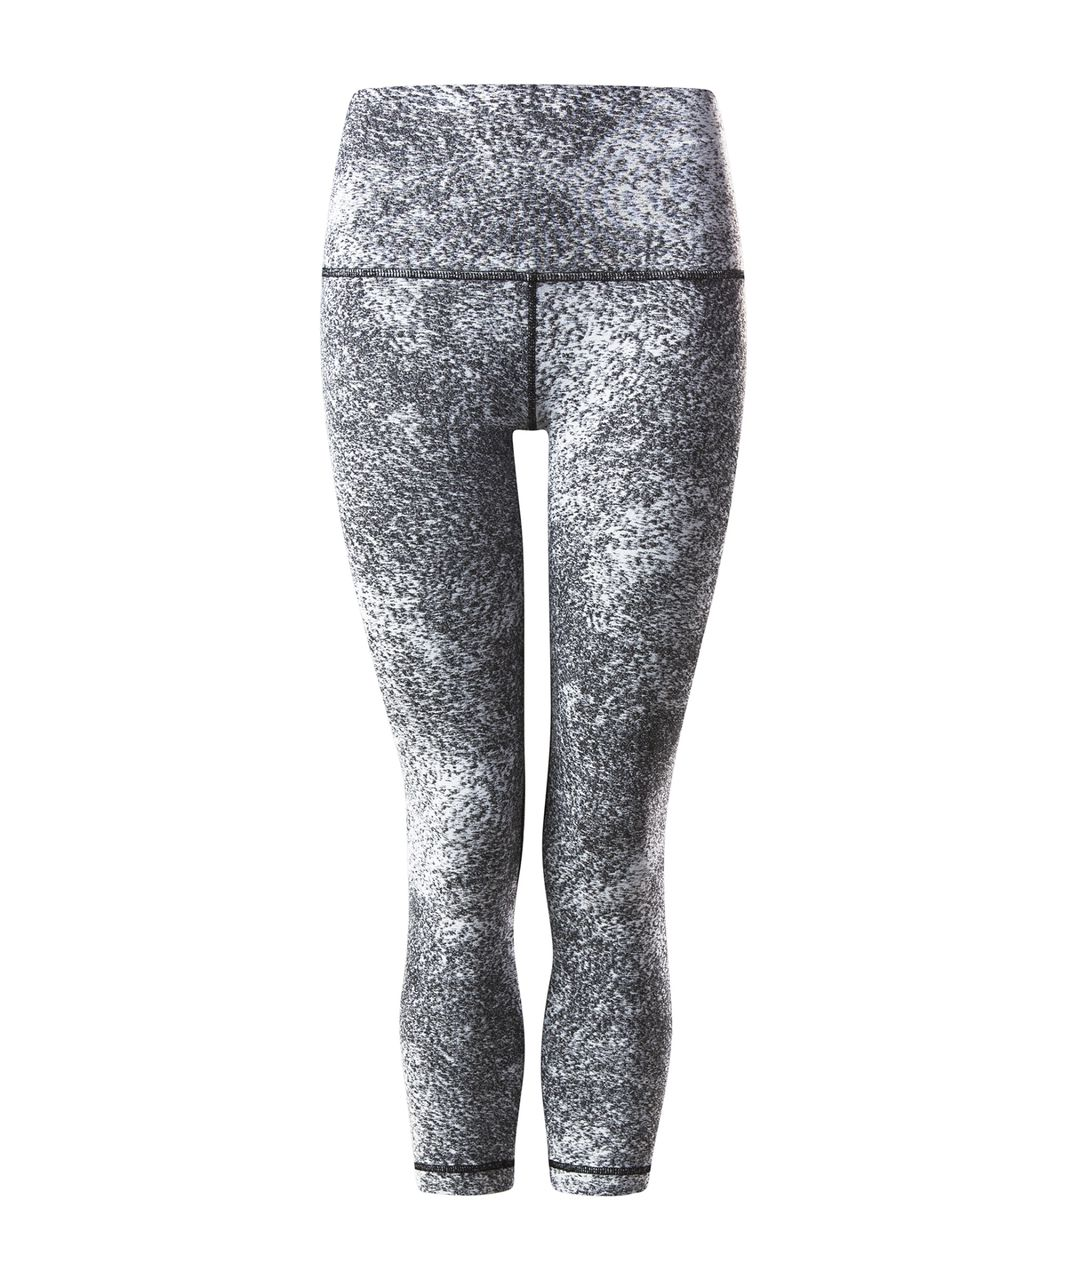 Lululemon Wunder Under Crop (Hi-Rise) - Luon Spray Jacquard White Black